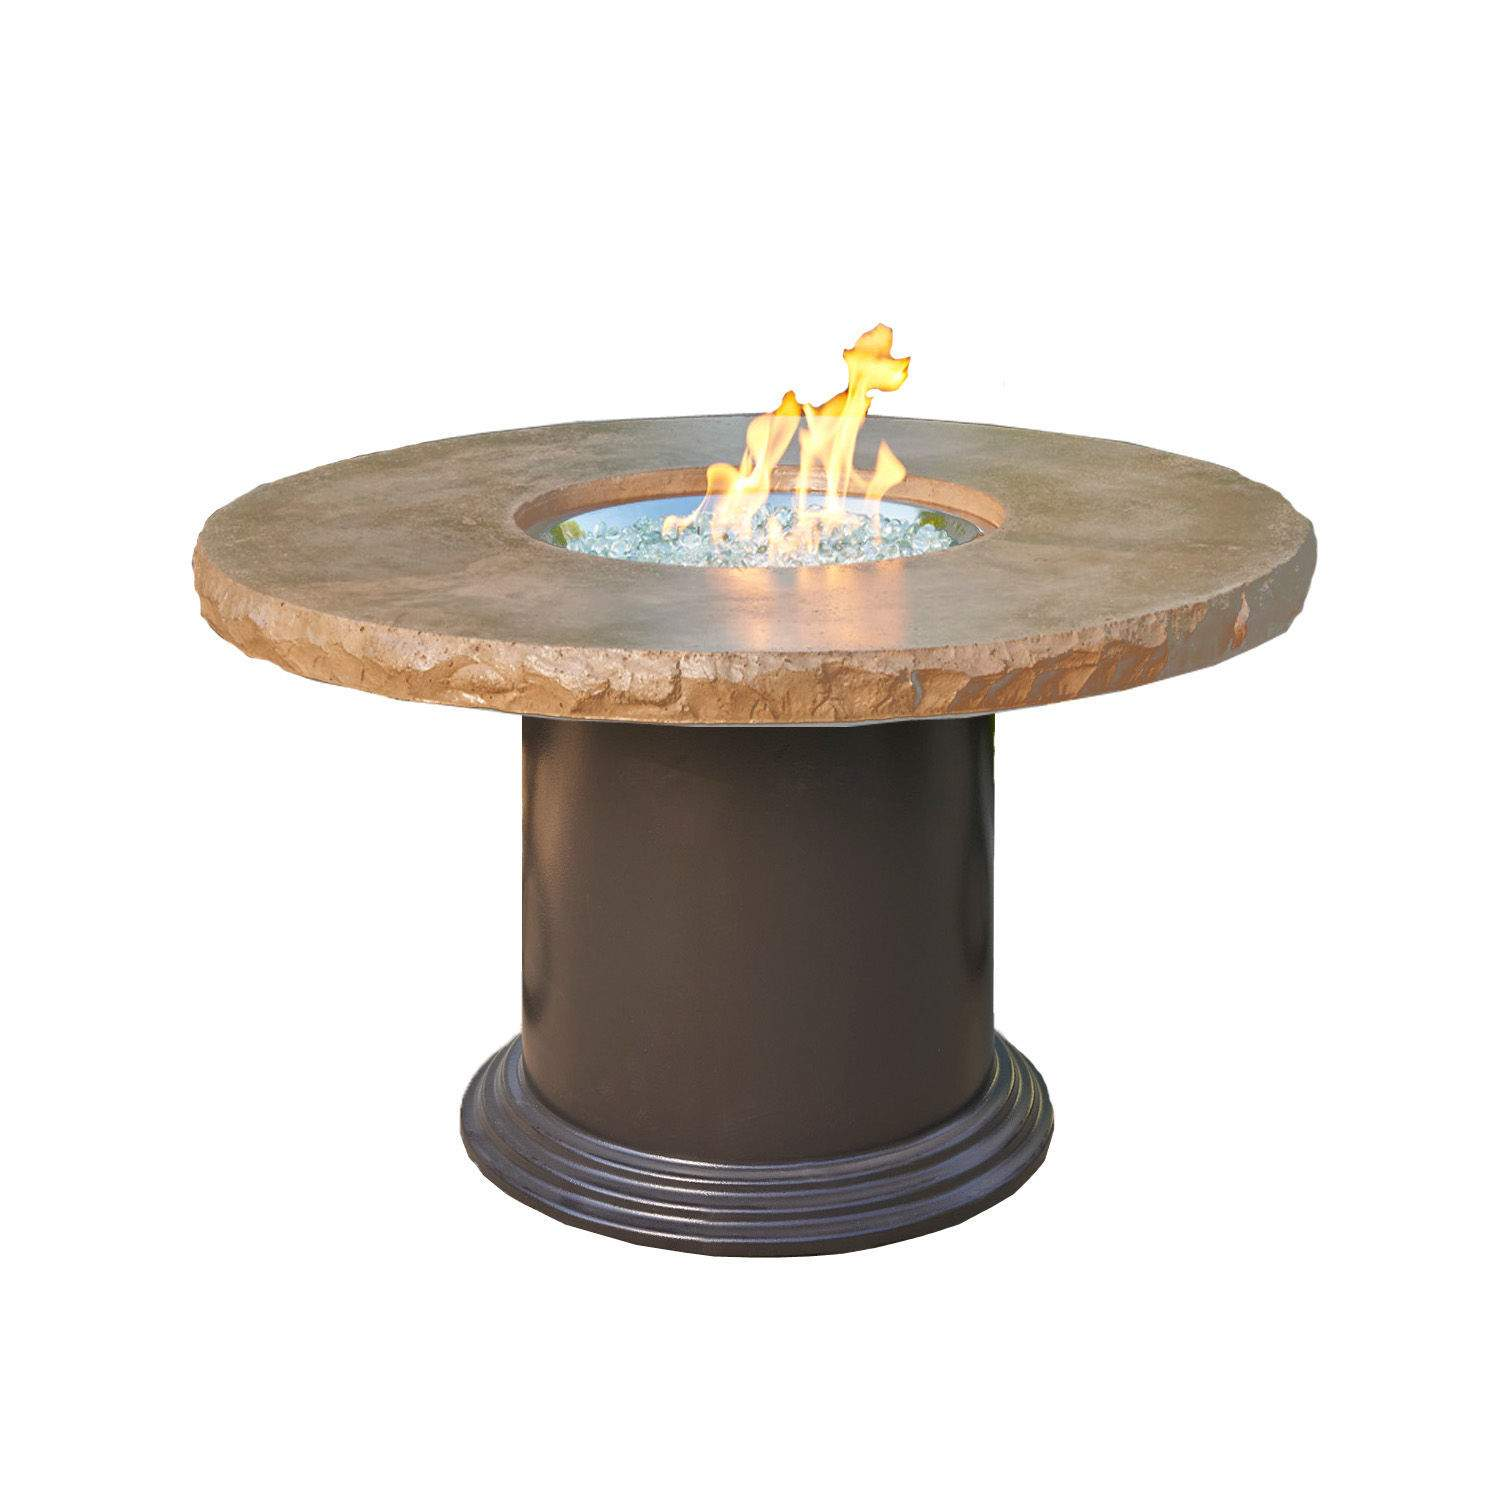 outdoor greatroom colonial dining height fire pit table mocha new ebay. Black Bedroom Furniture Sets. Home Design Ideas